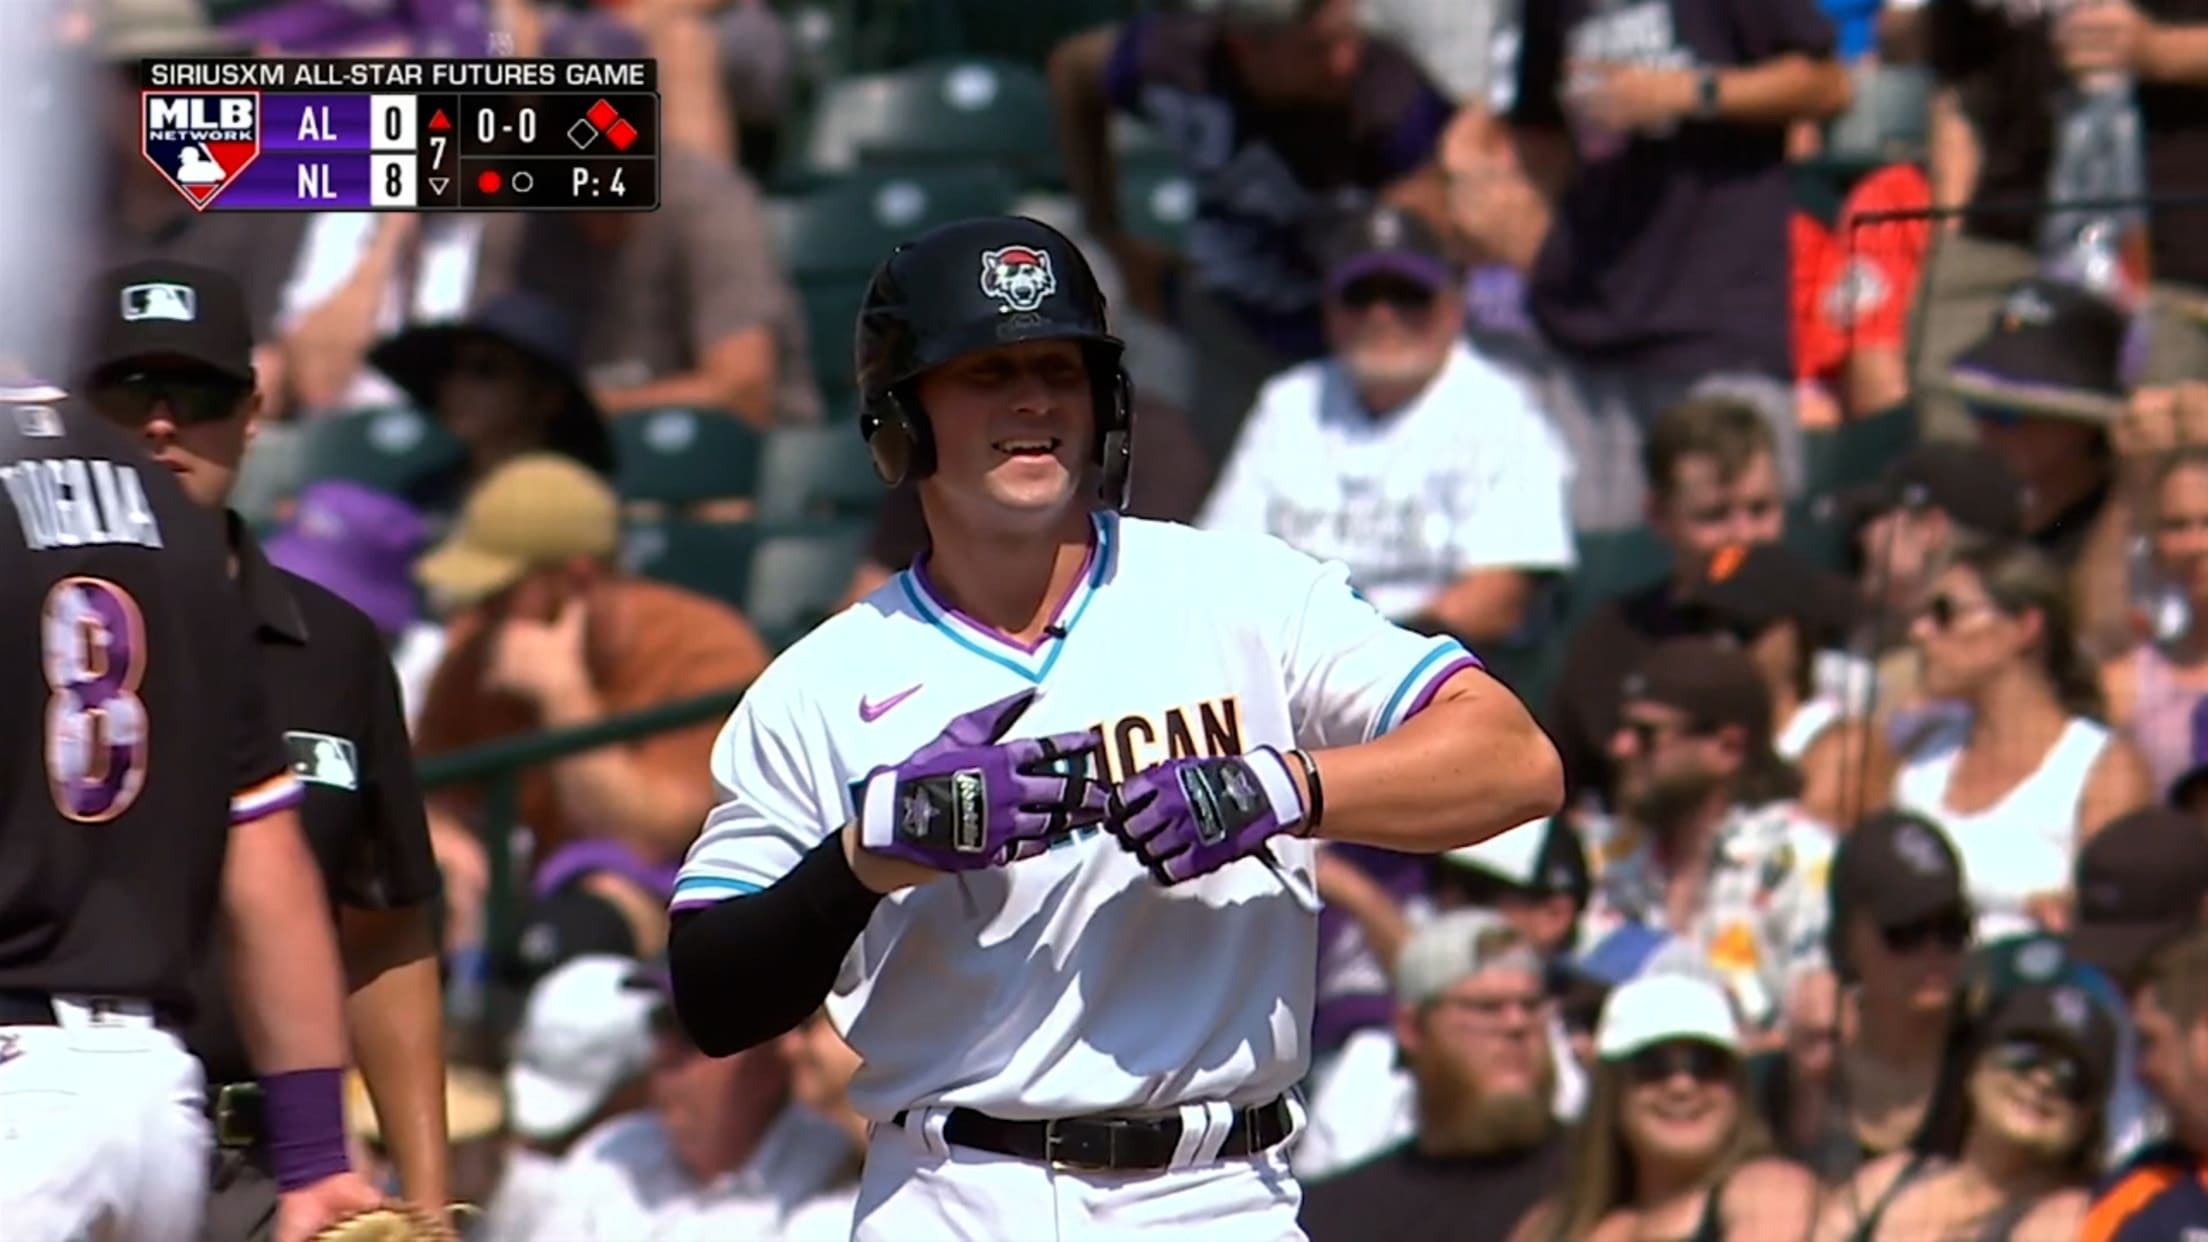 Tigers shine in the Futures Game